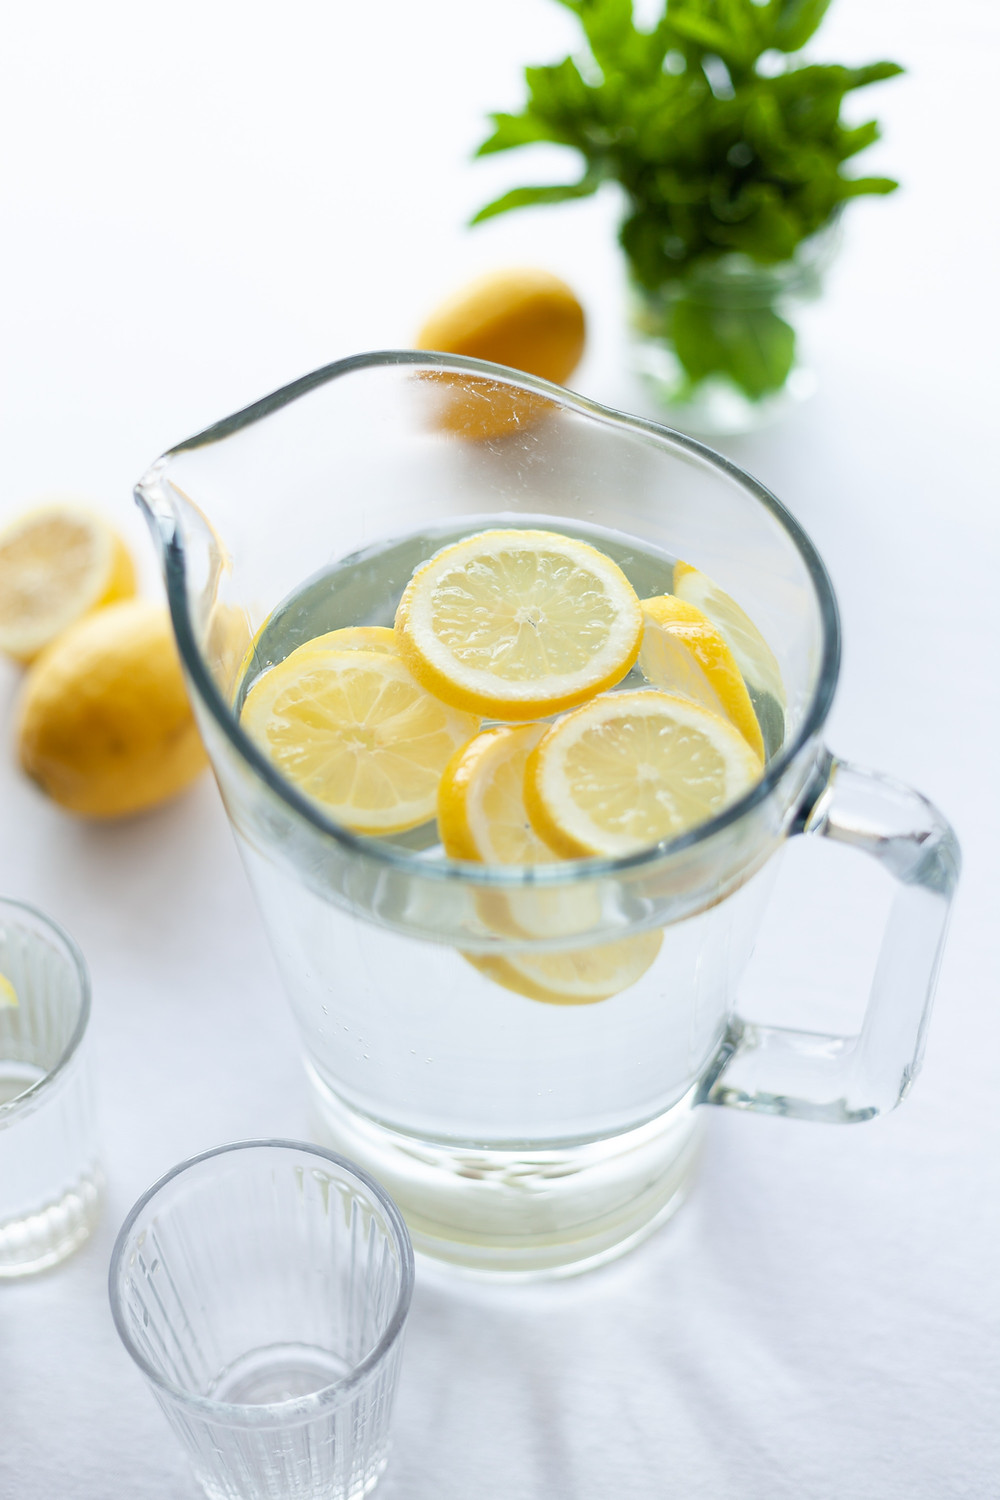 jug of water with slices of lemon in